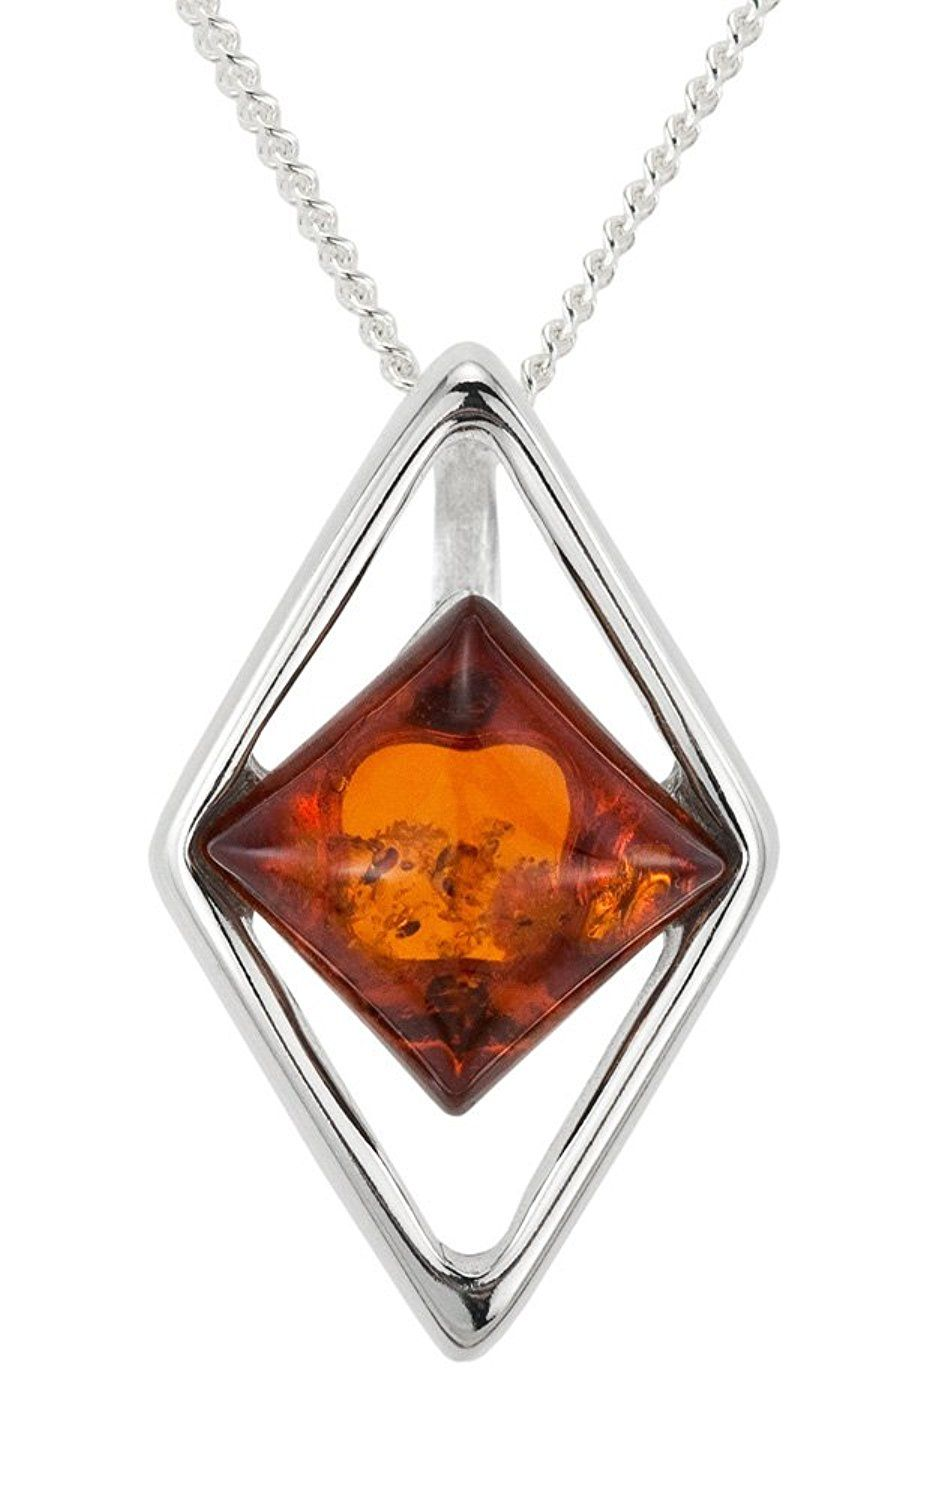 Ornami Sterling Silver Amber diamond shape pendant on 46cm curb BD0El30j7